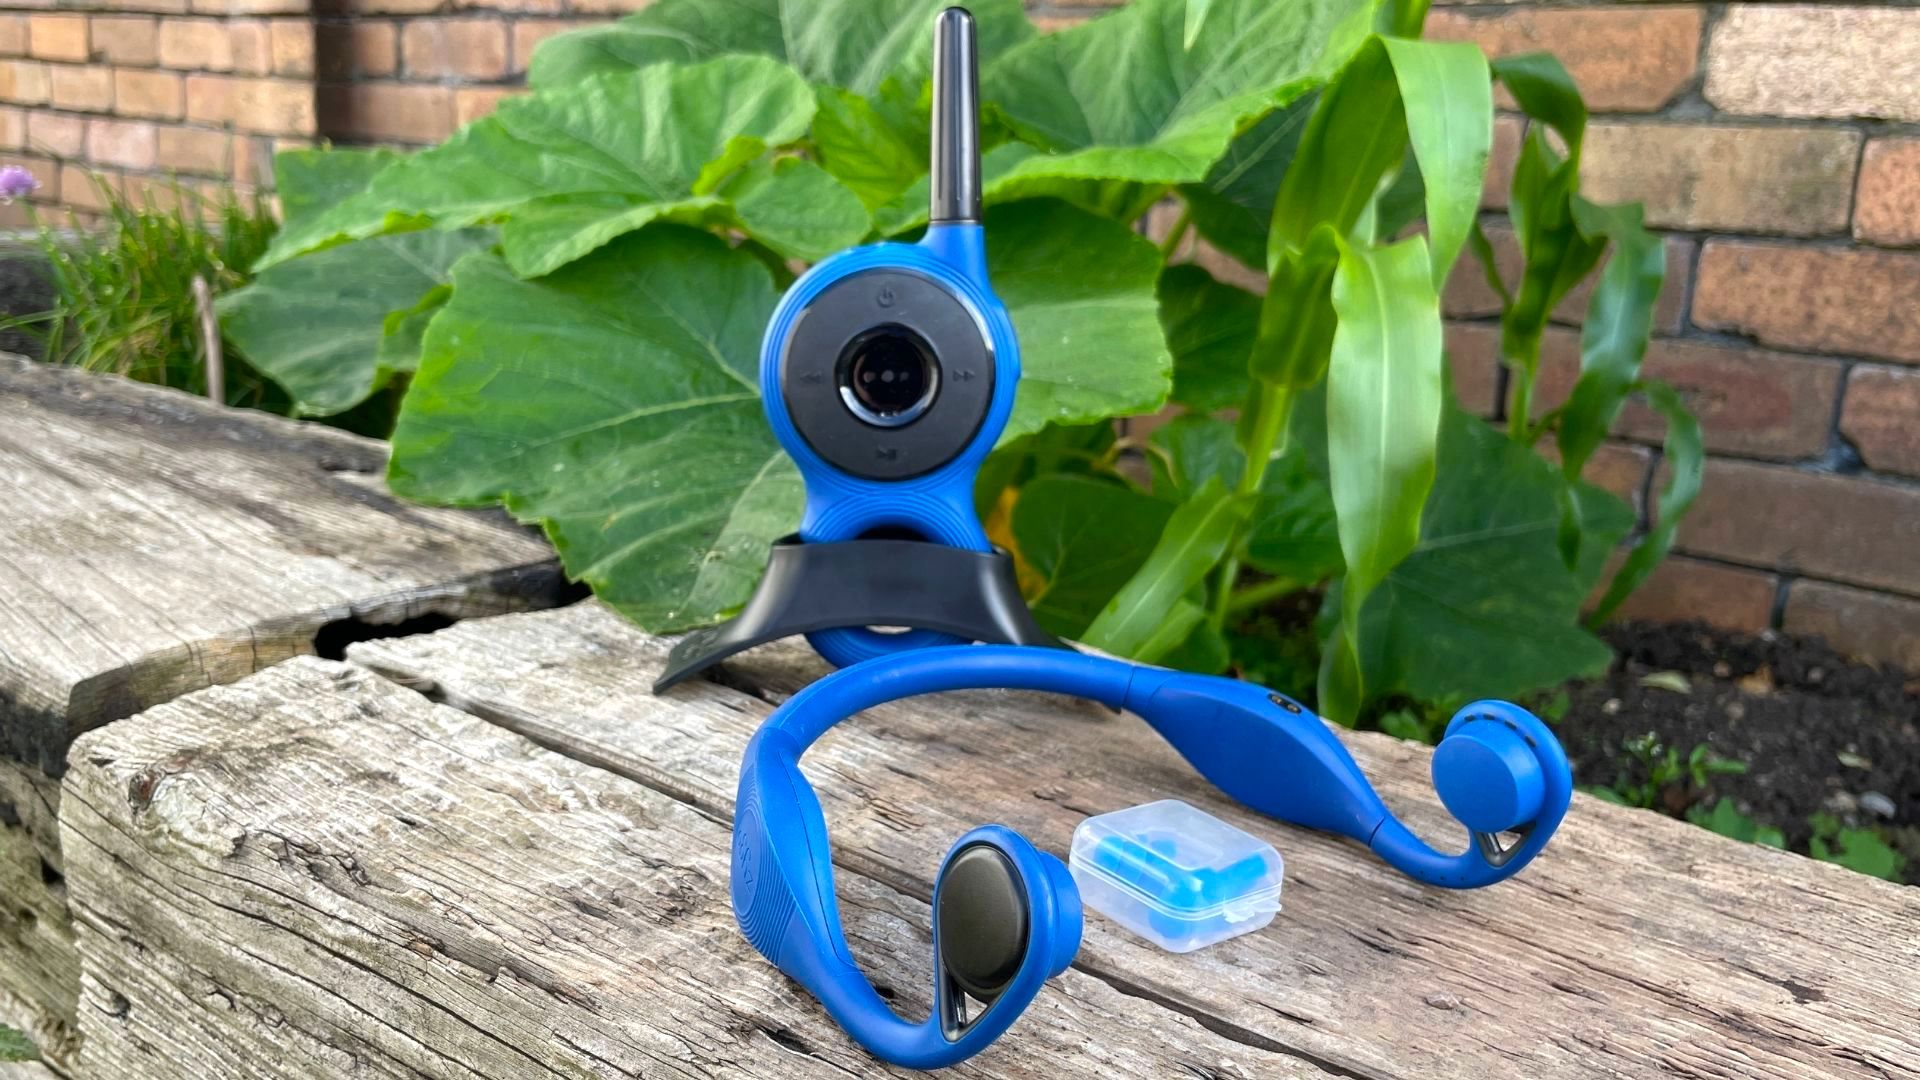 Zygo Solo headset with transmitter